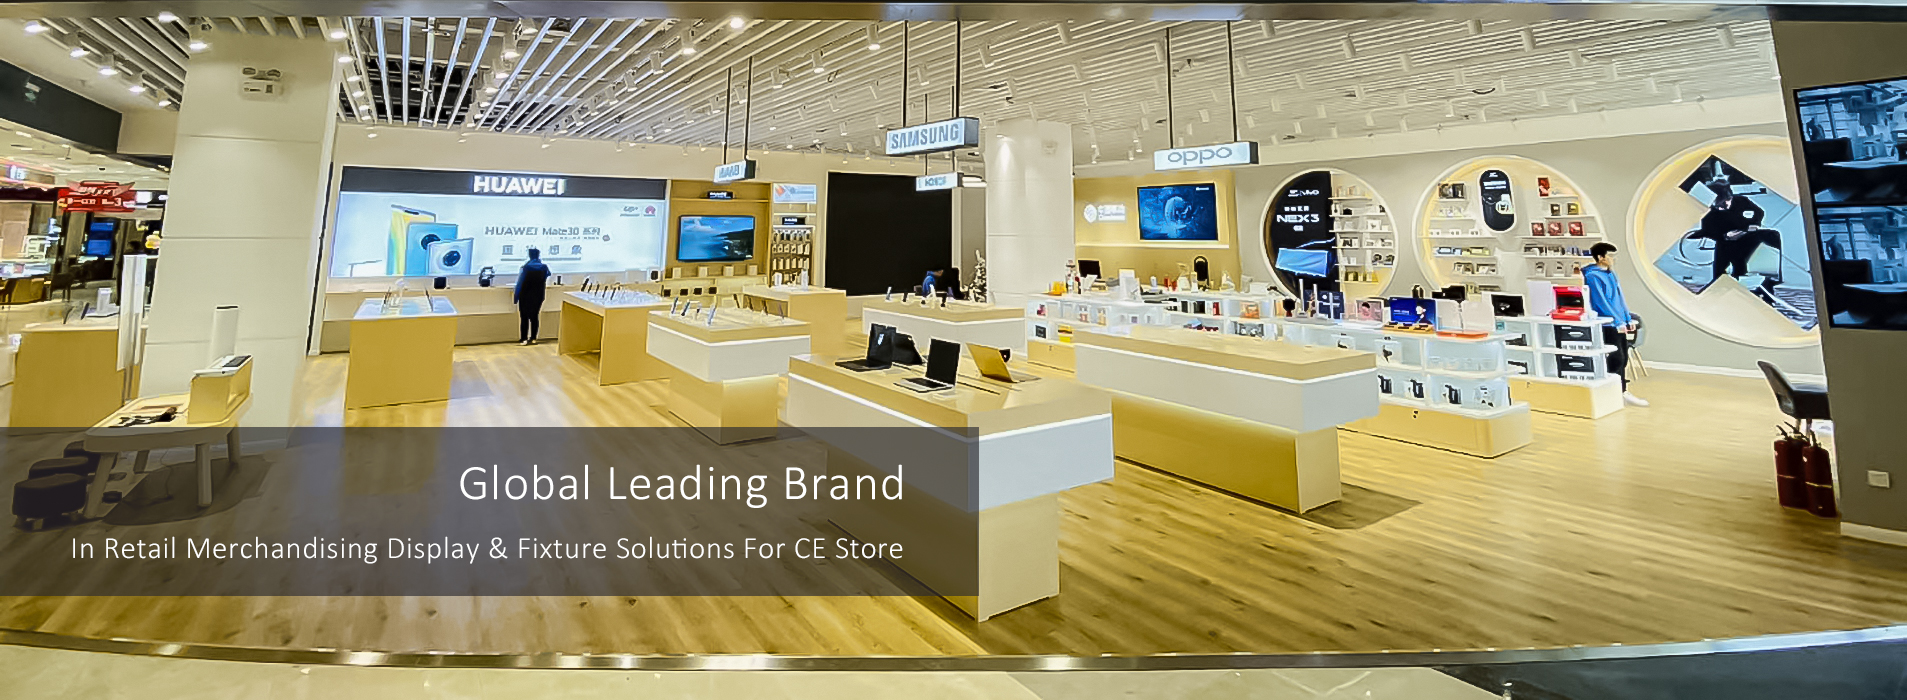 RECHI is global leading brand in retail merchandising display and fixture solution for electronic store